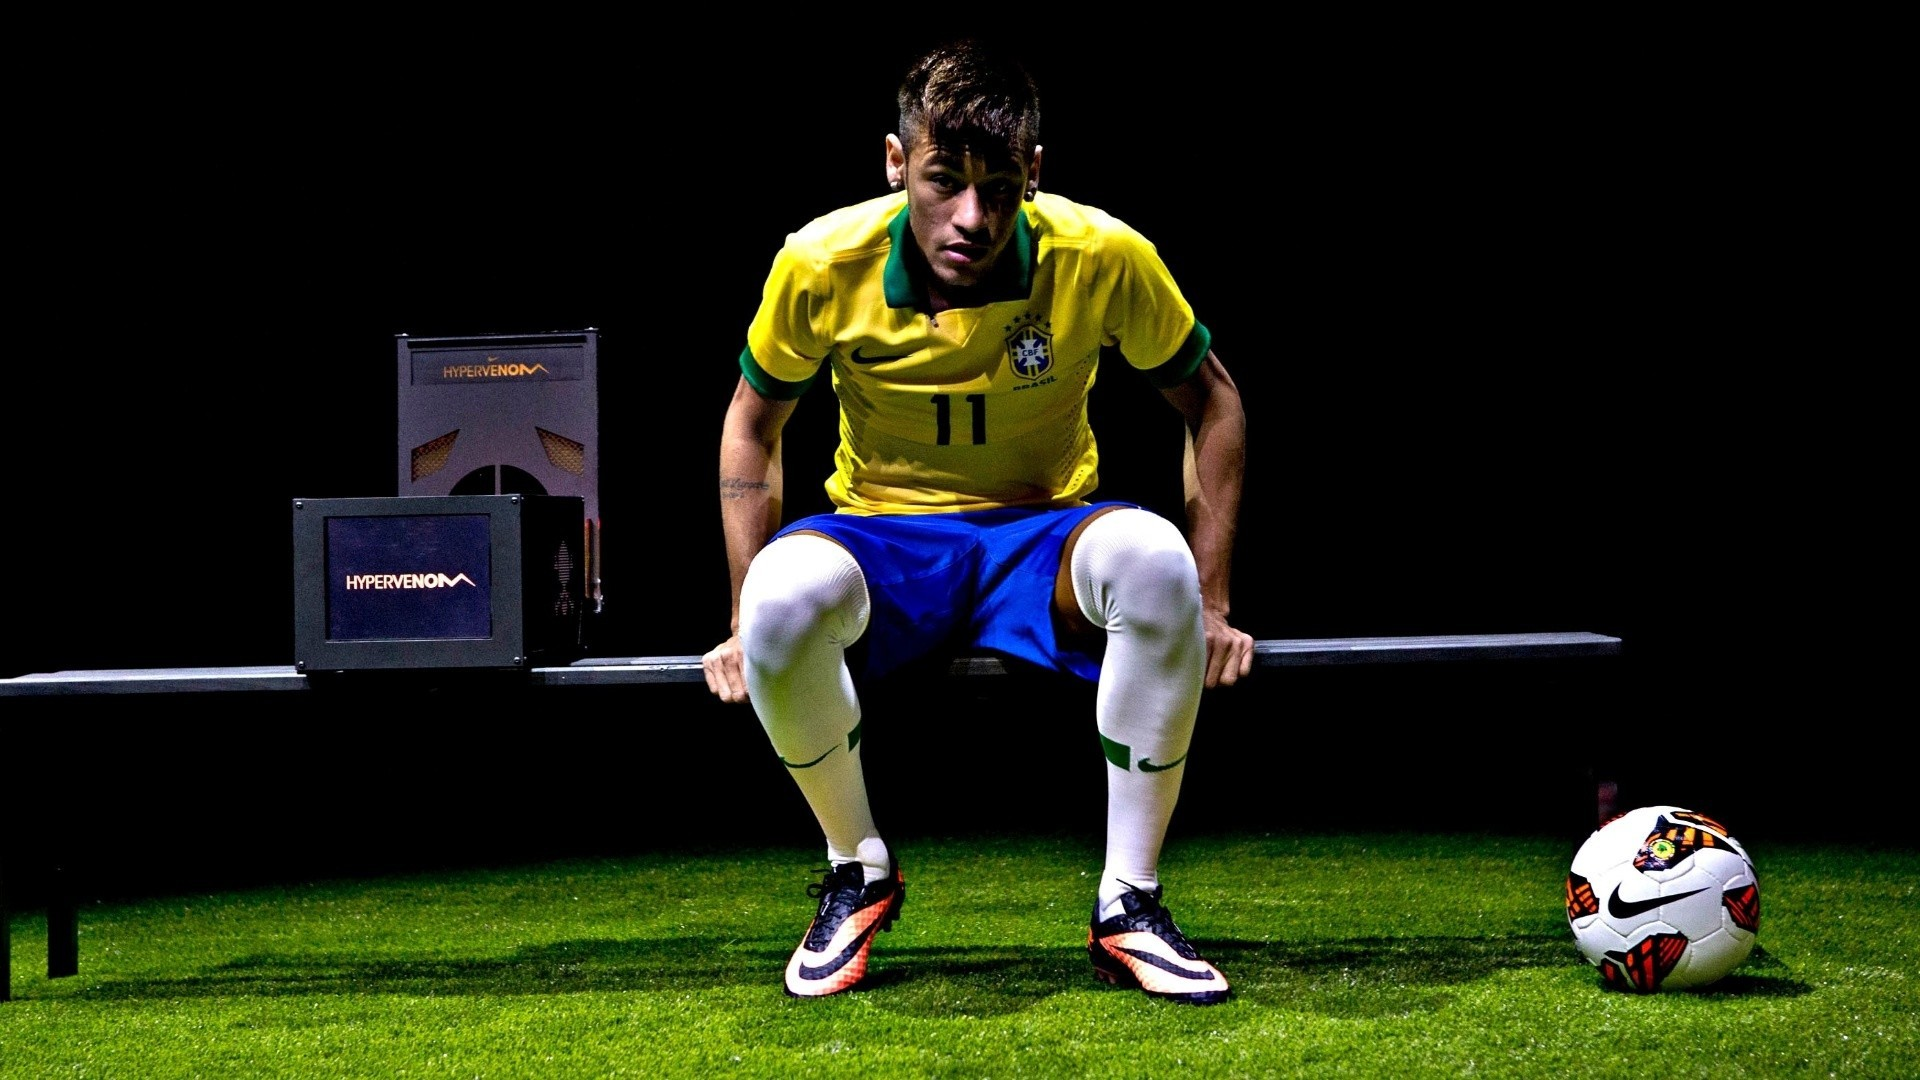 1920x1080 Neymar Full HD Wallpaper